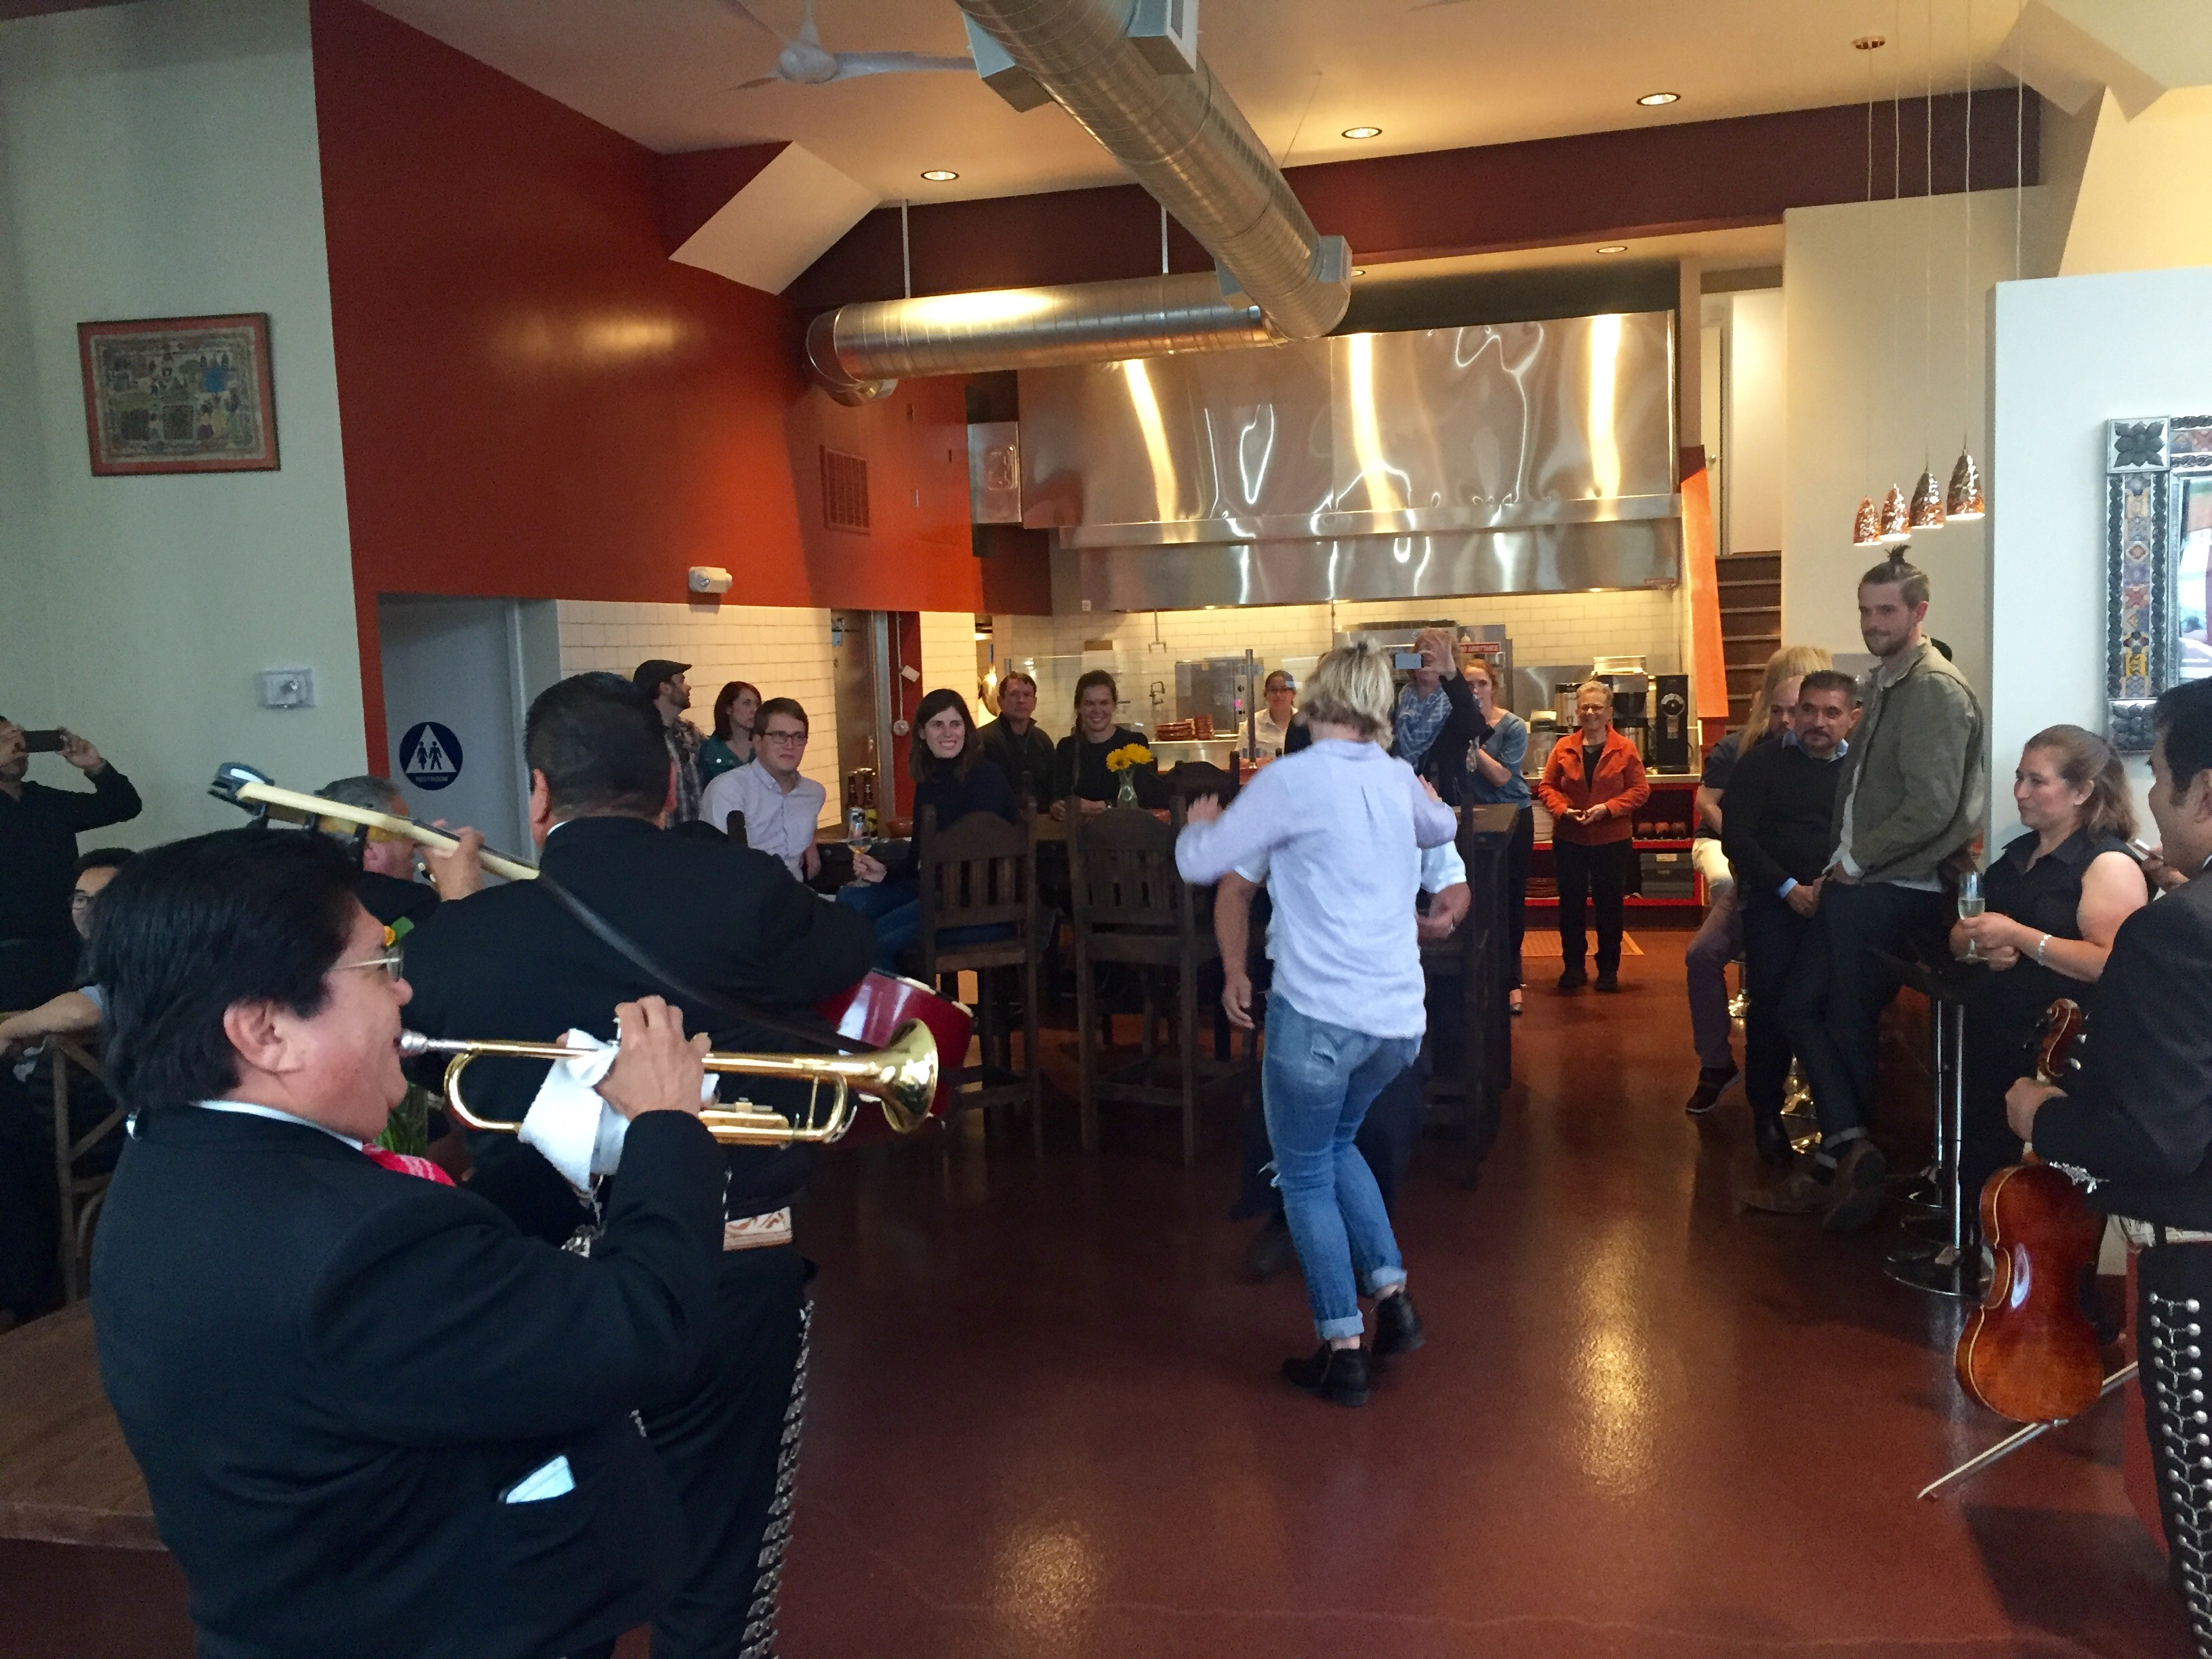 The pre-opening party included a mariachi band